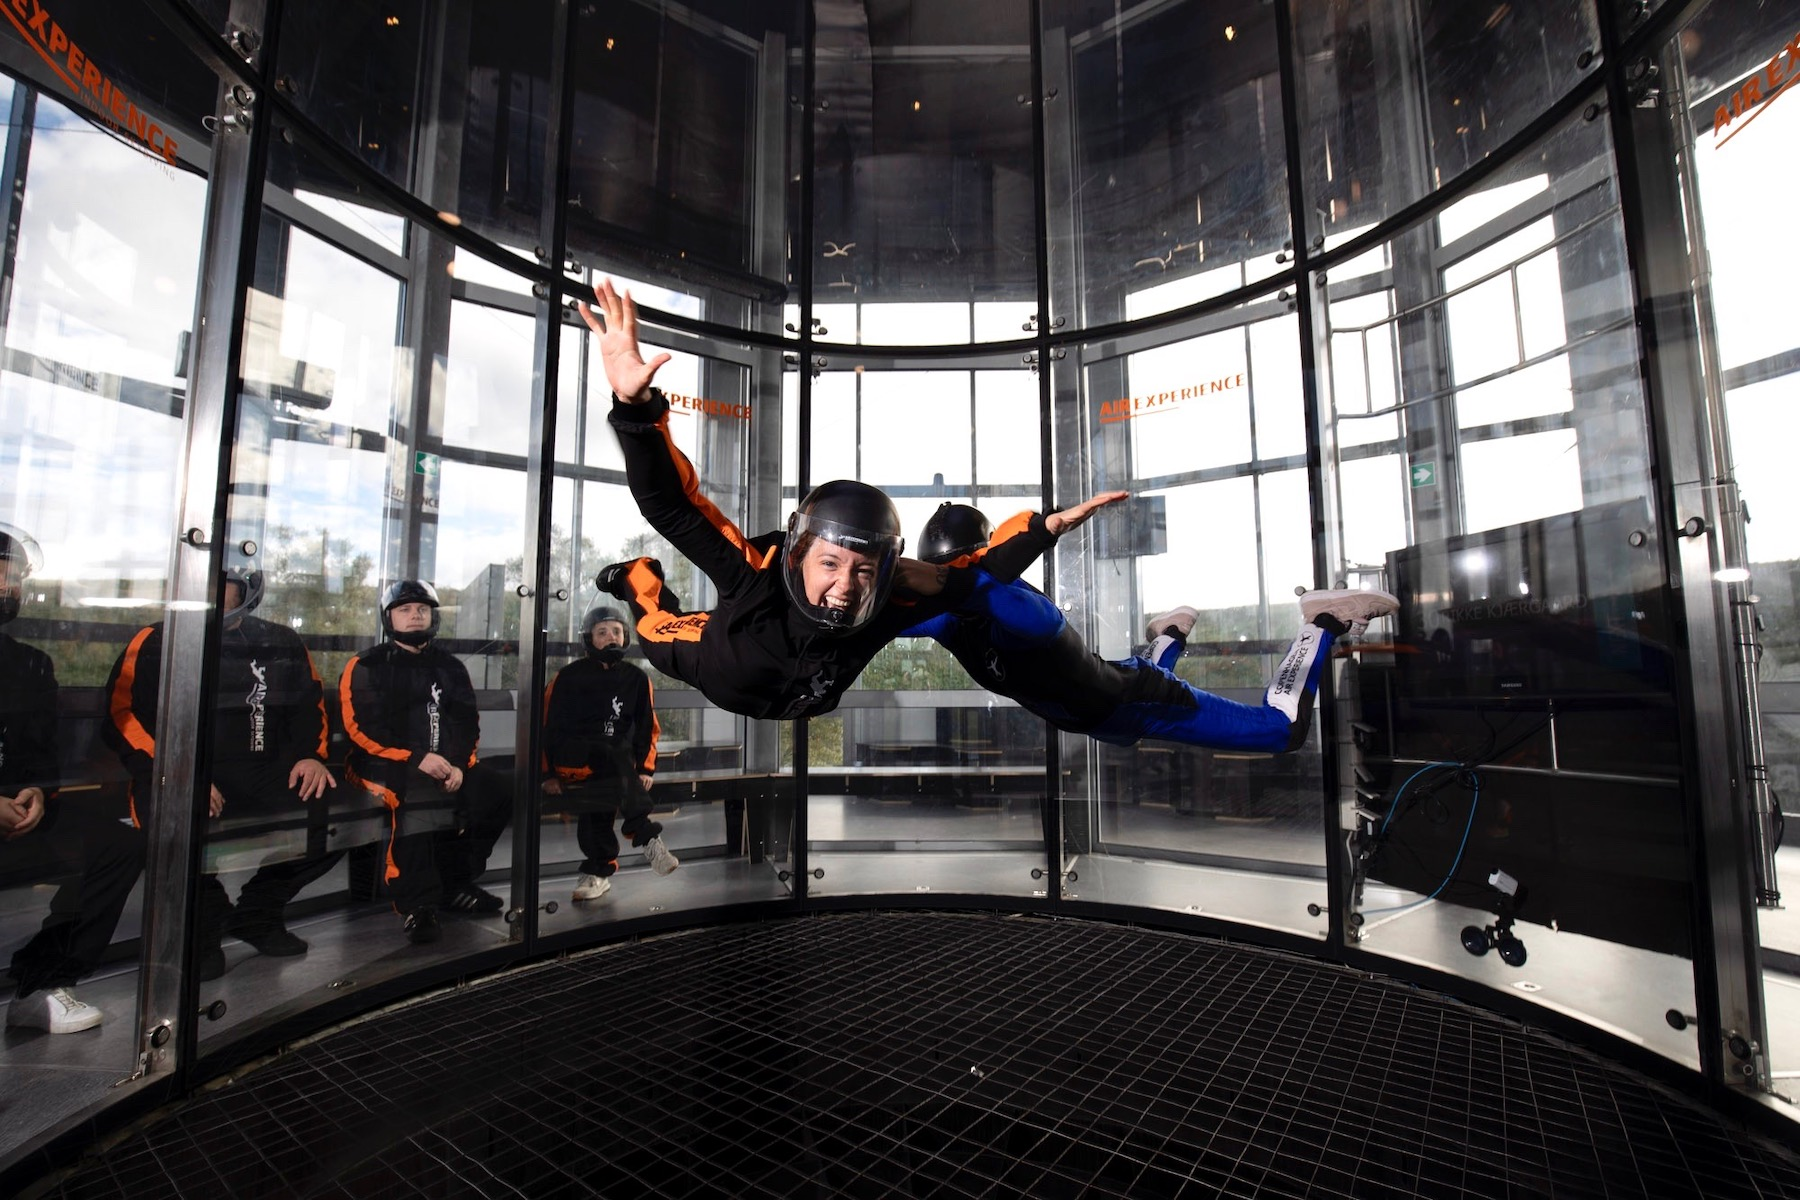 Kob gavekort indoor skydiving